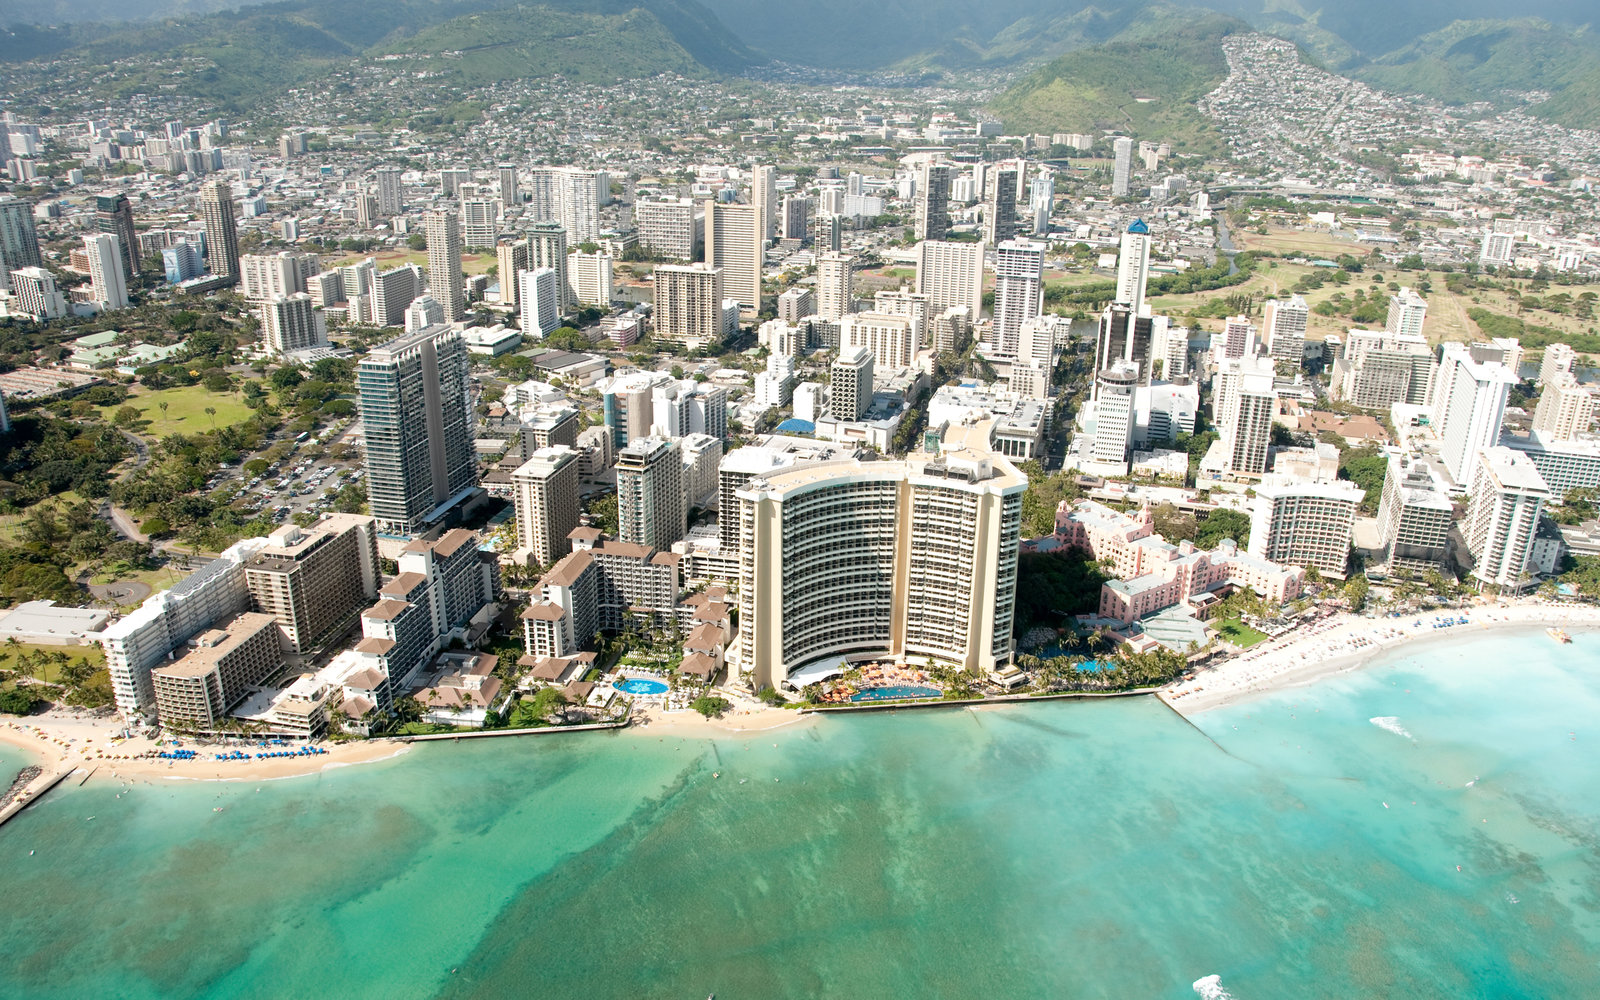 9. Honolulu, Hawaii